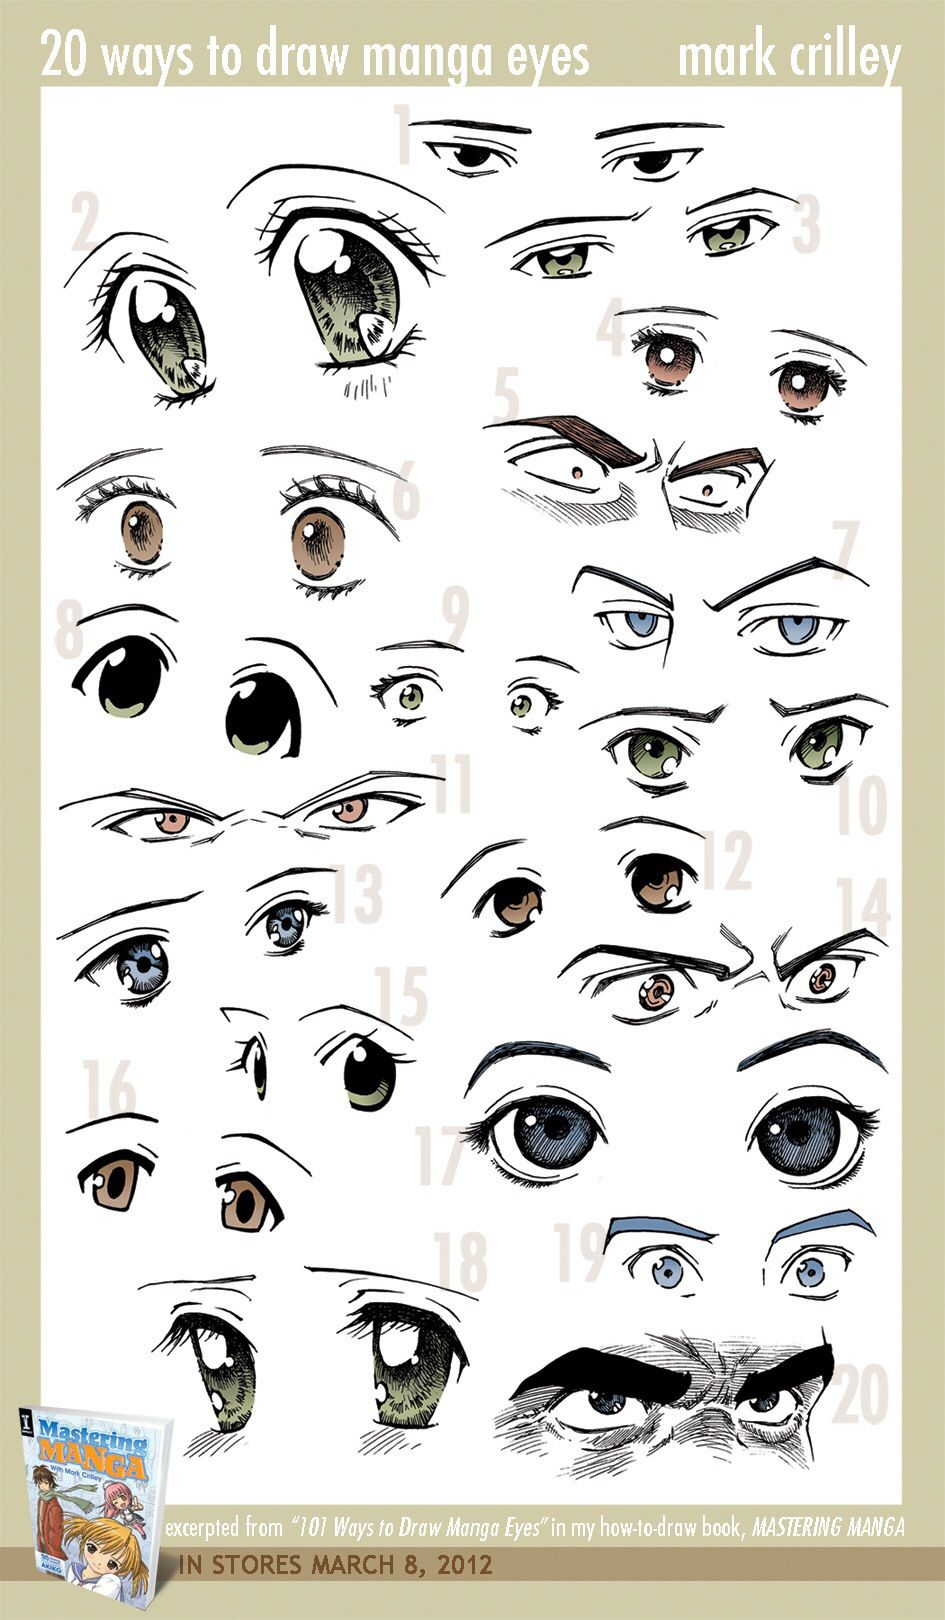 Different anime eye styles manga anime manga eyes anime eyes manga art